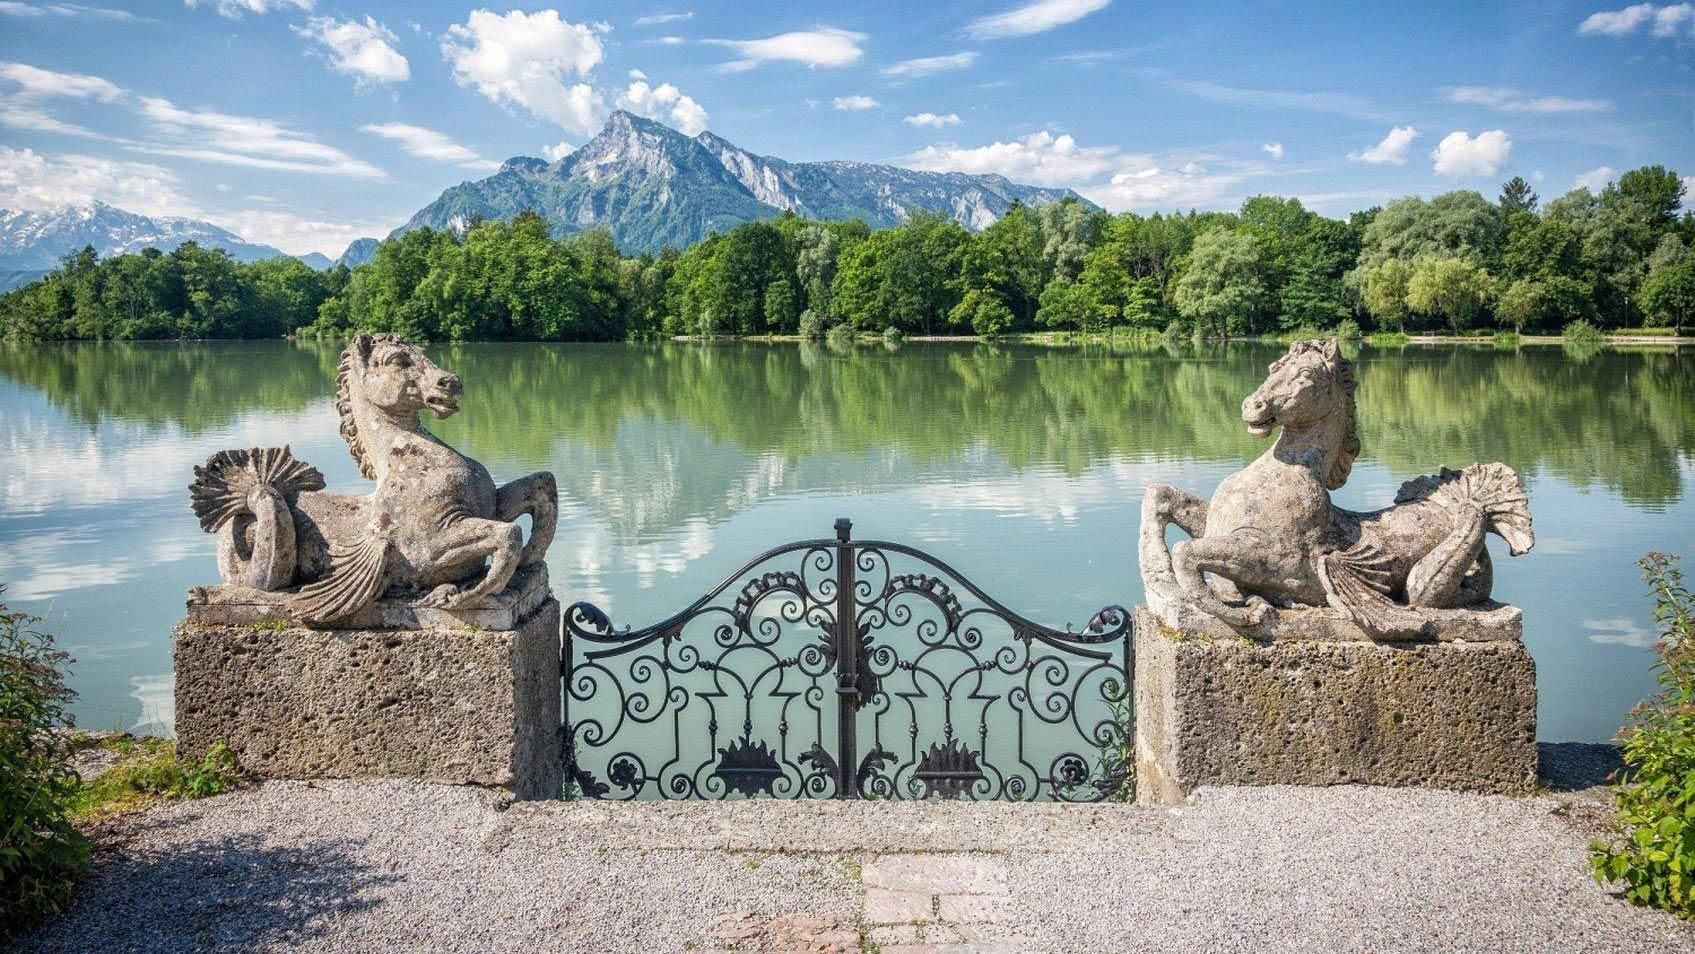 Related Image Sound Of Music Tour Salzburg Sound Of Music